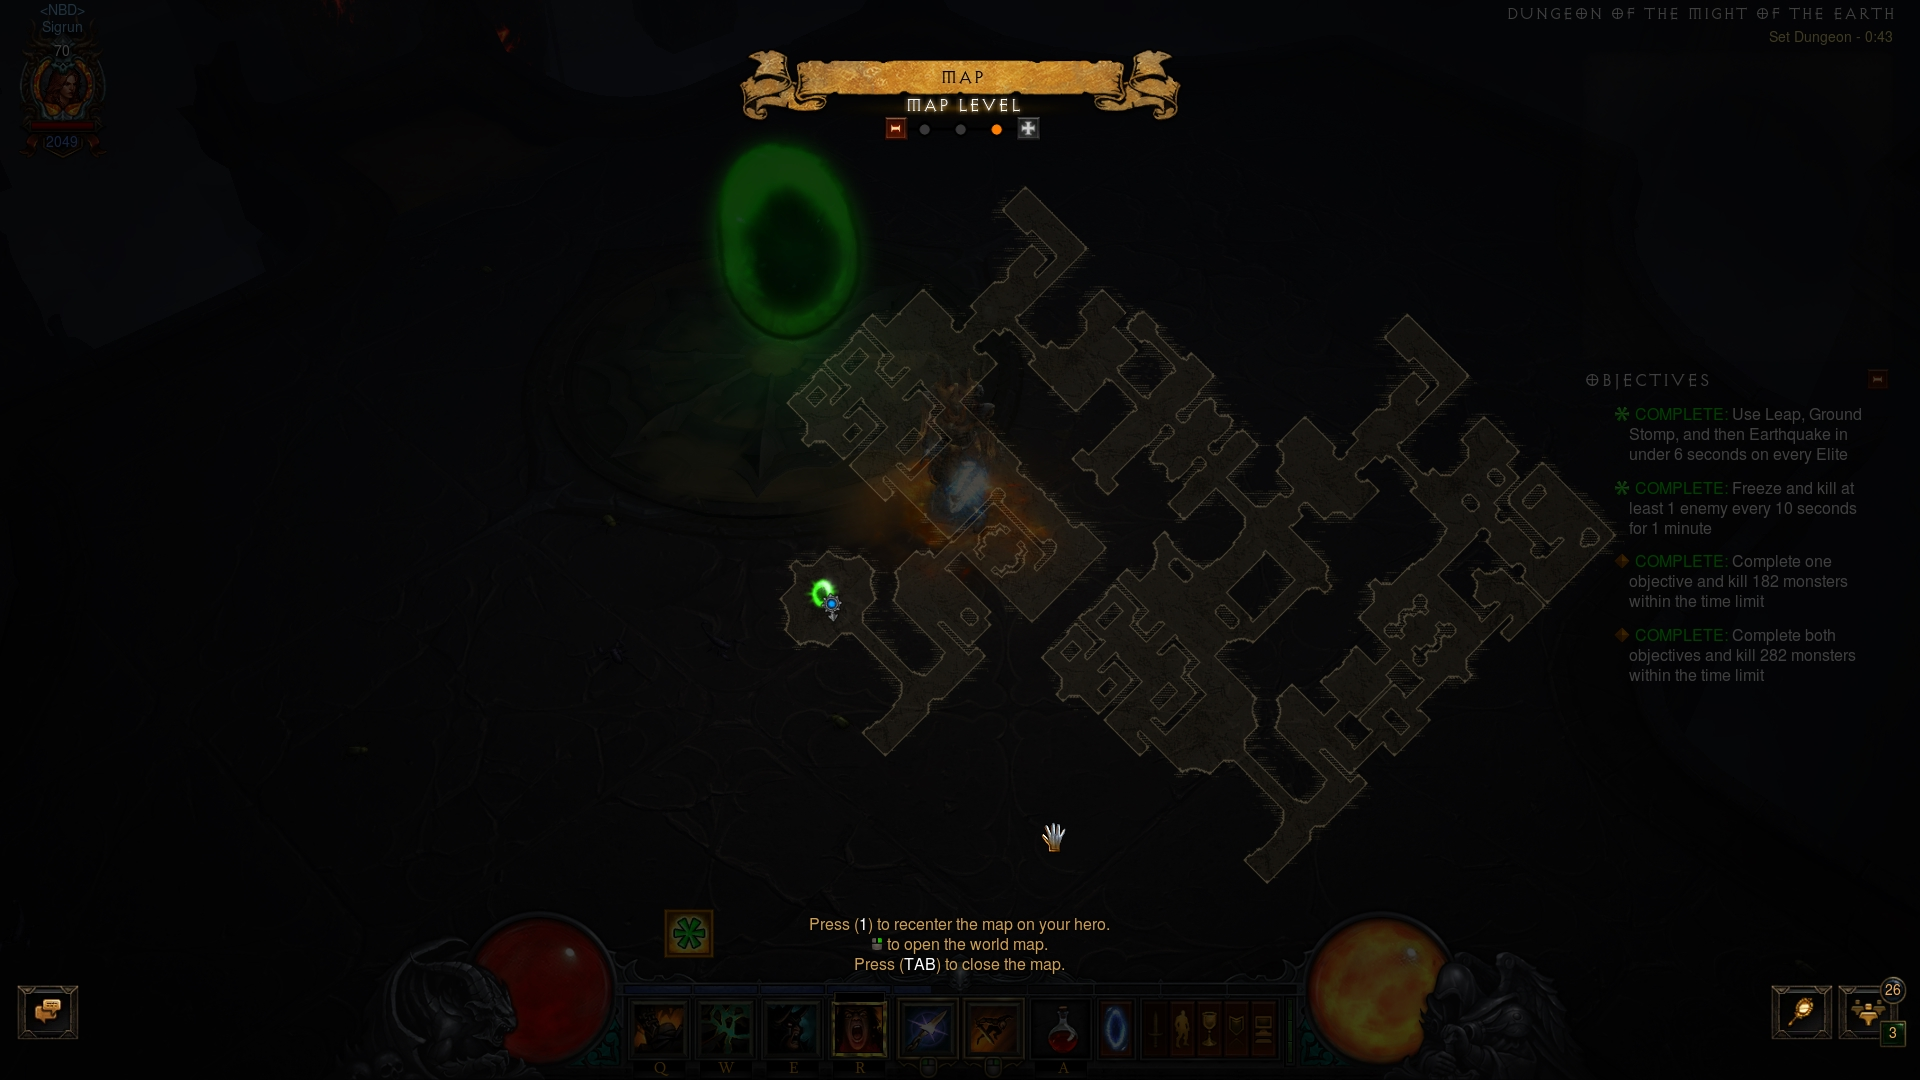 Layout of MotE set dungeon